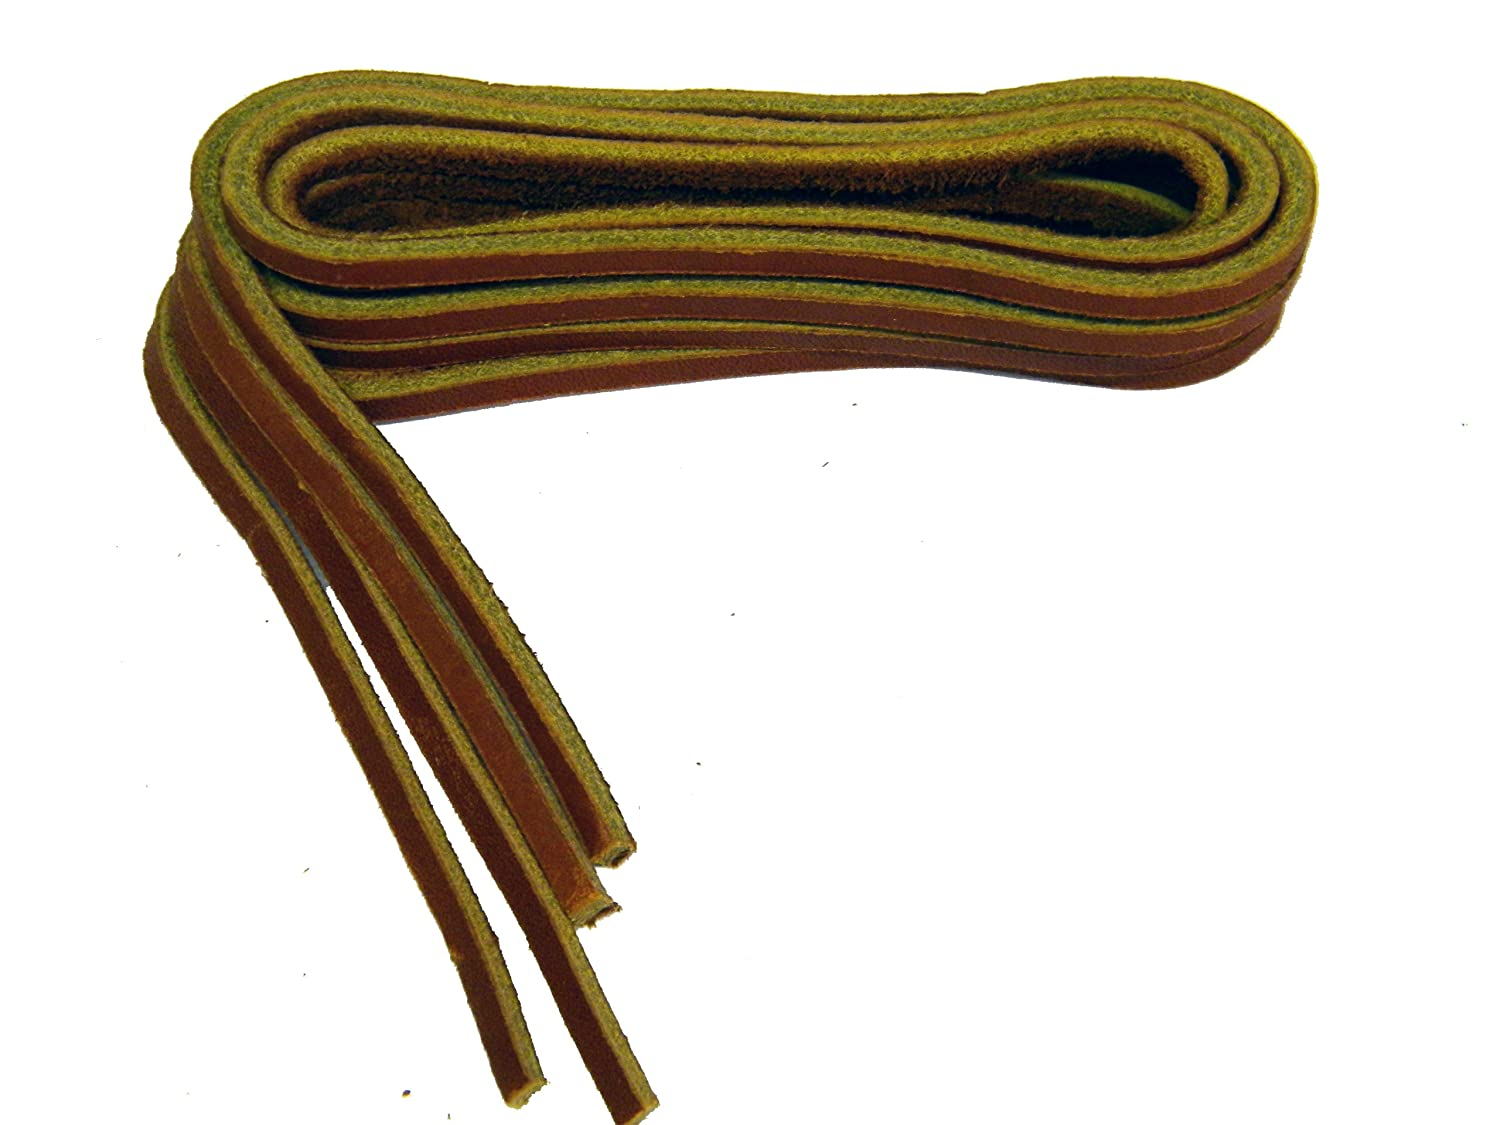 Tan Rawhide Leather Laces for Boots and Quality Footwear 1/8 Inch Square Cut Rawhide (63 inch)